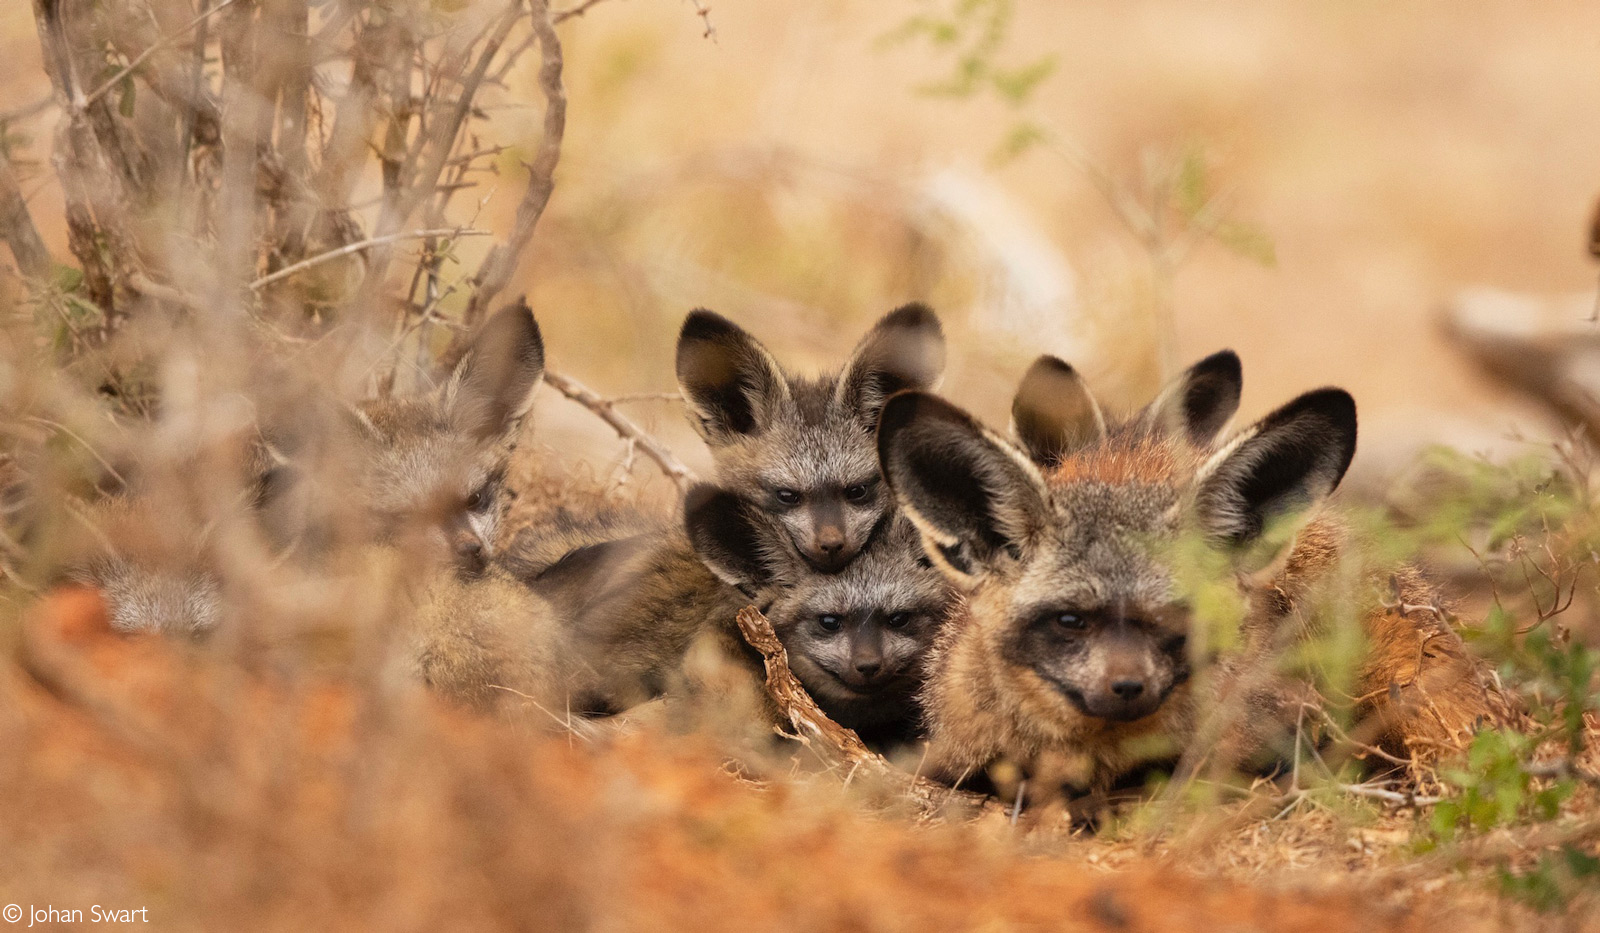 Family of bat-eared foxes. Addo Elephant National Park, South Africa © Johan Swart